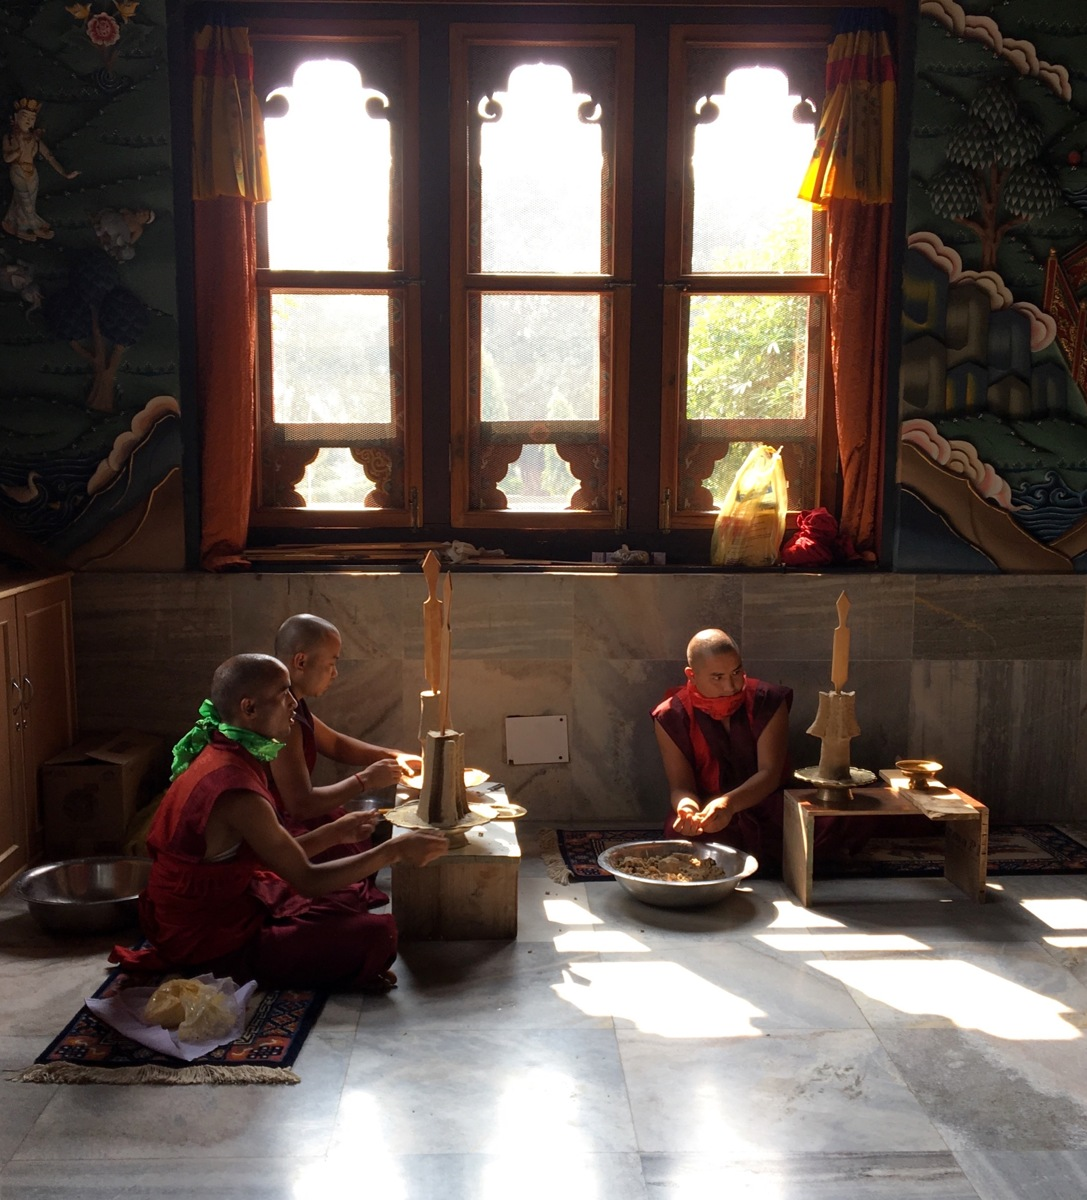 Buthan Monks in Bodhgaya (large view)